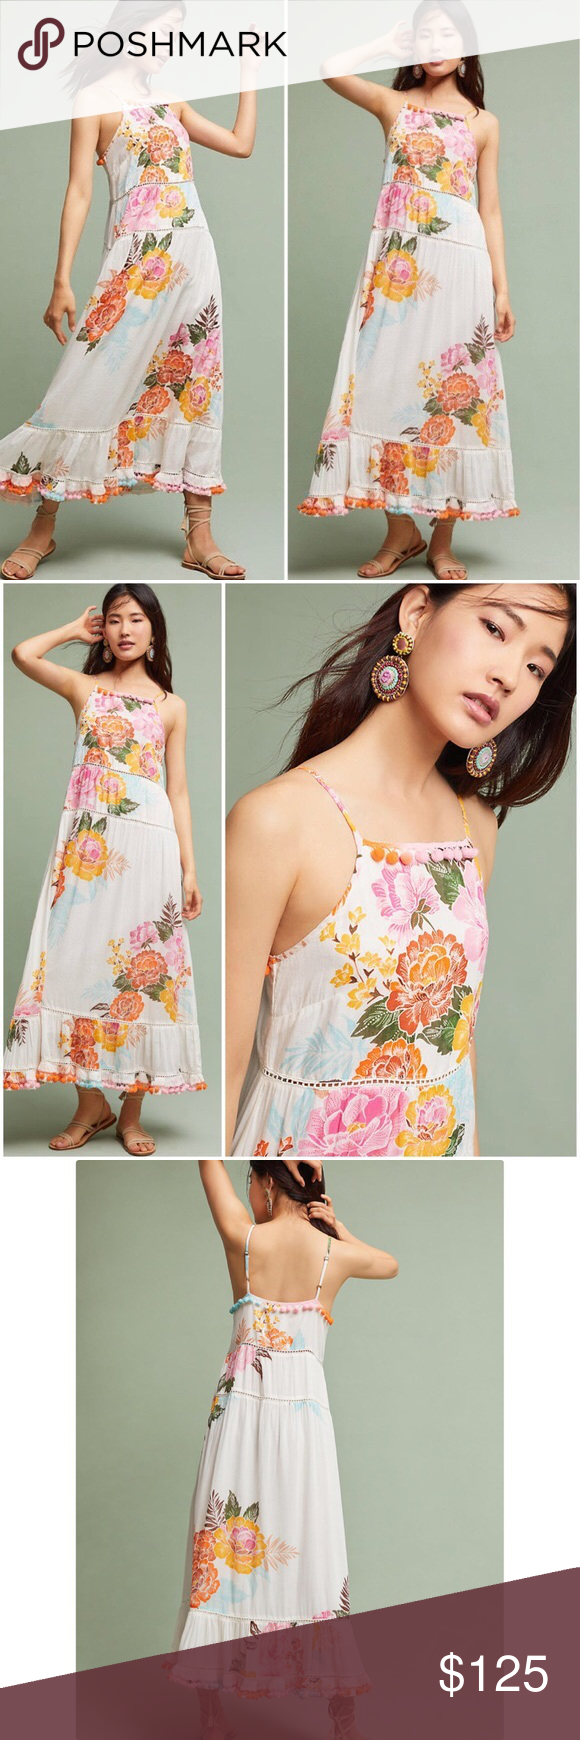 8ed4a369c8c 💃2XHP💃Anthropologie Farm Rio Havana Floral Dress What began as a handful  of goods